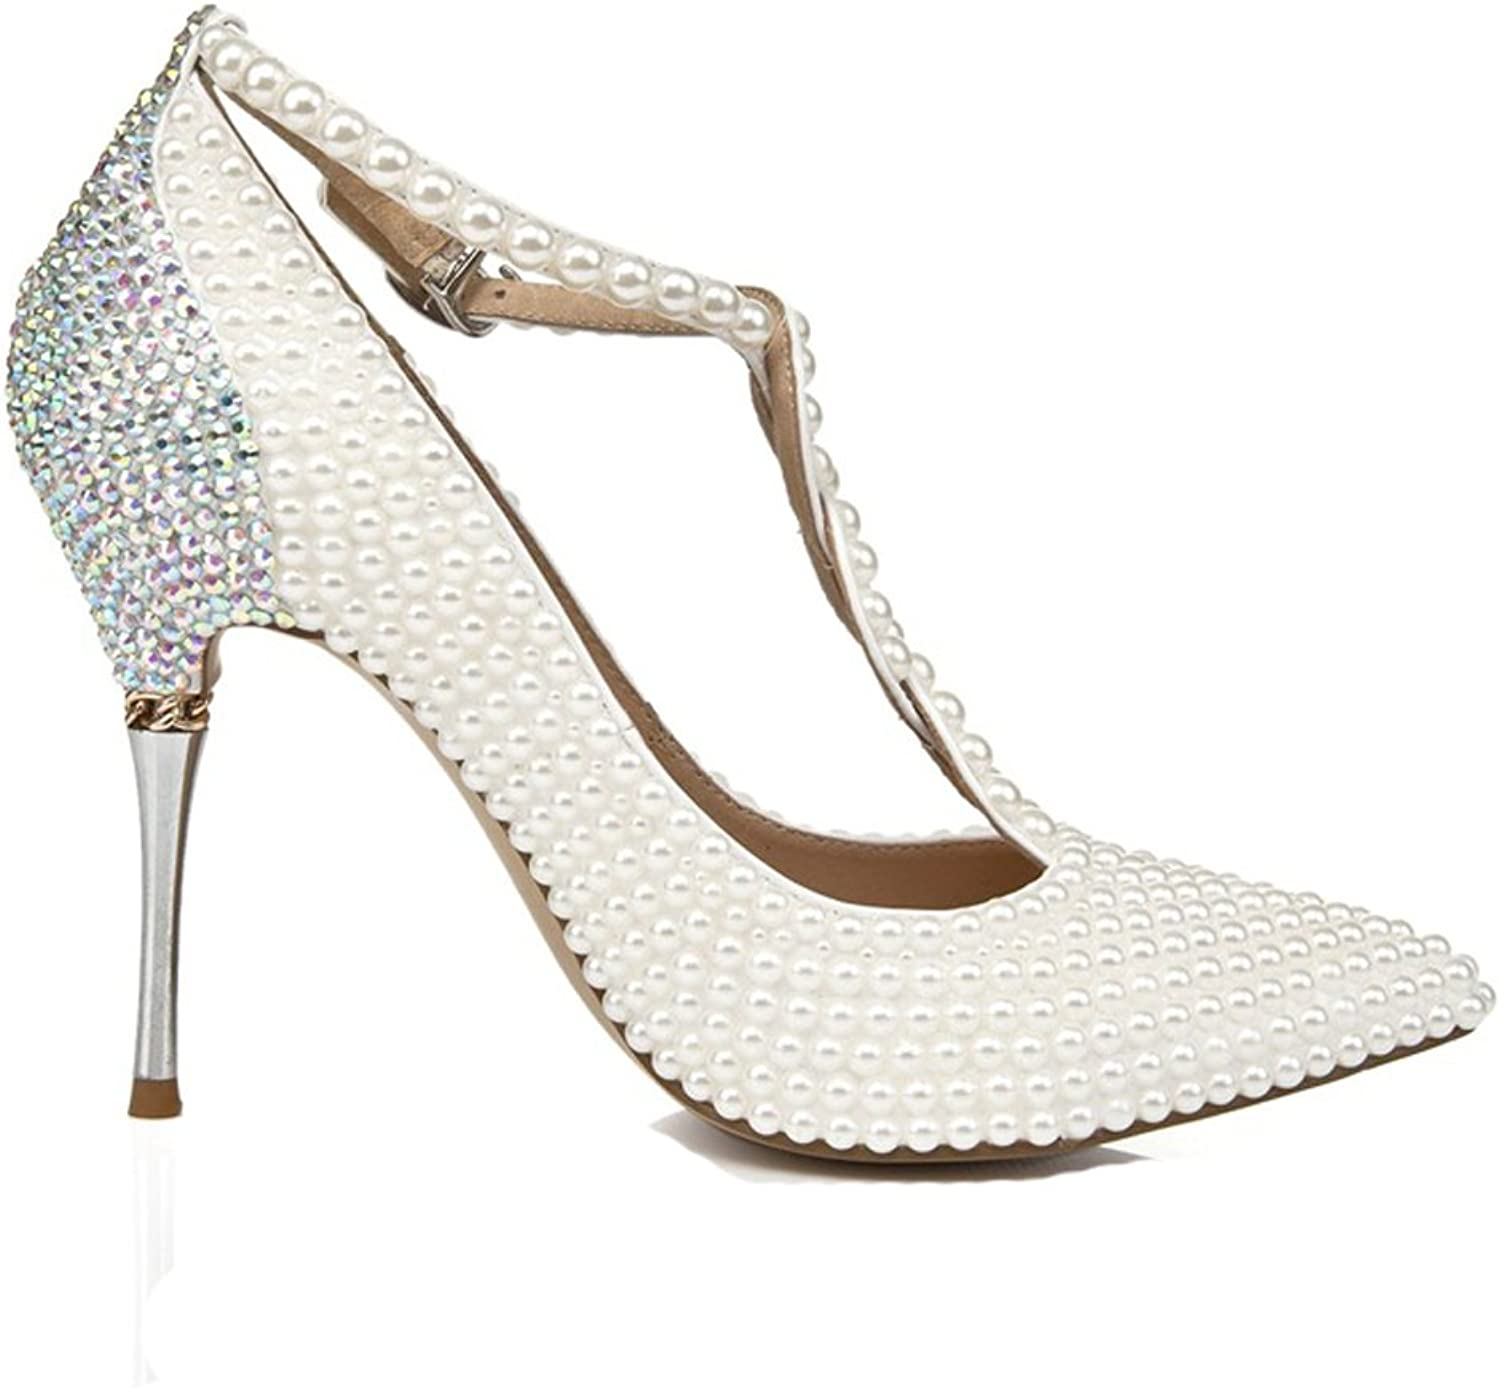 MCandy Bride Pearls Wedding Party shoes Prom Dance Dress Stiletto Leather Pumps